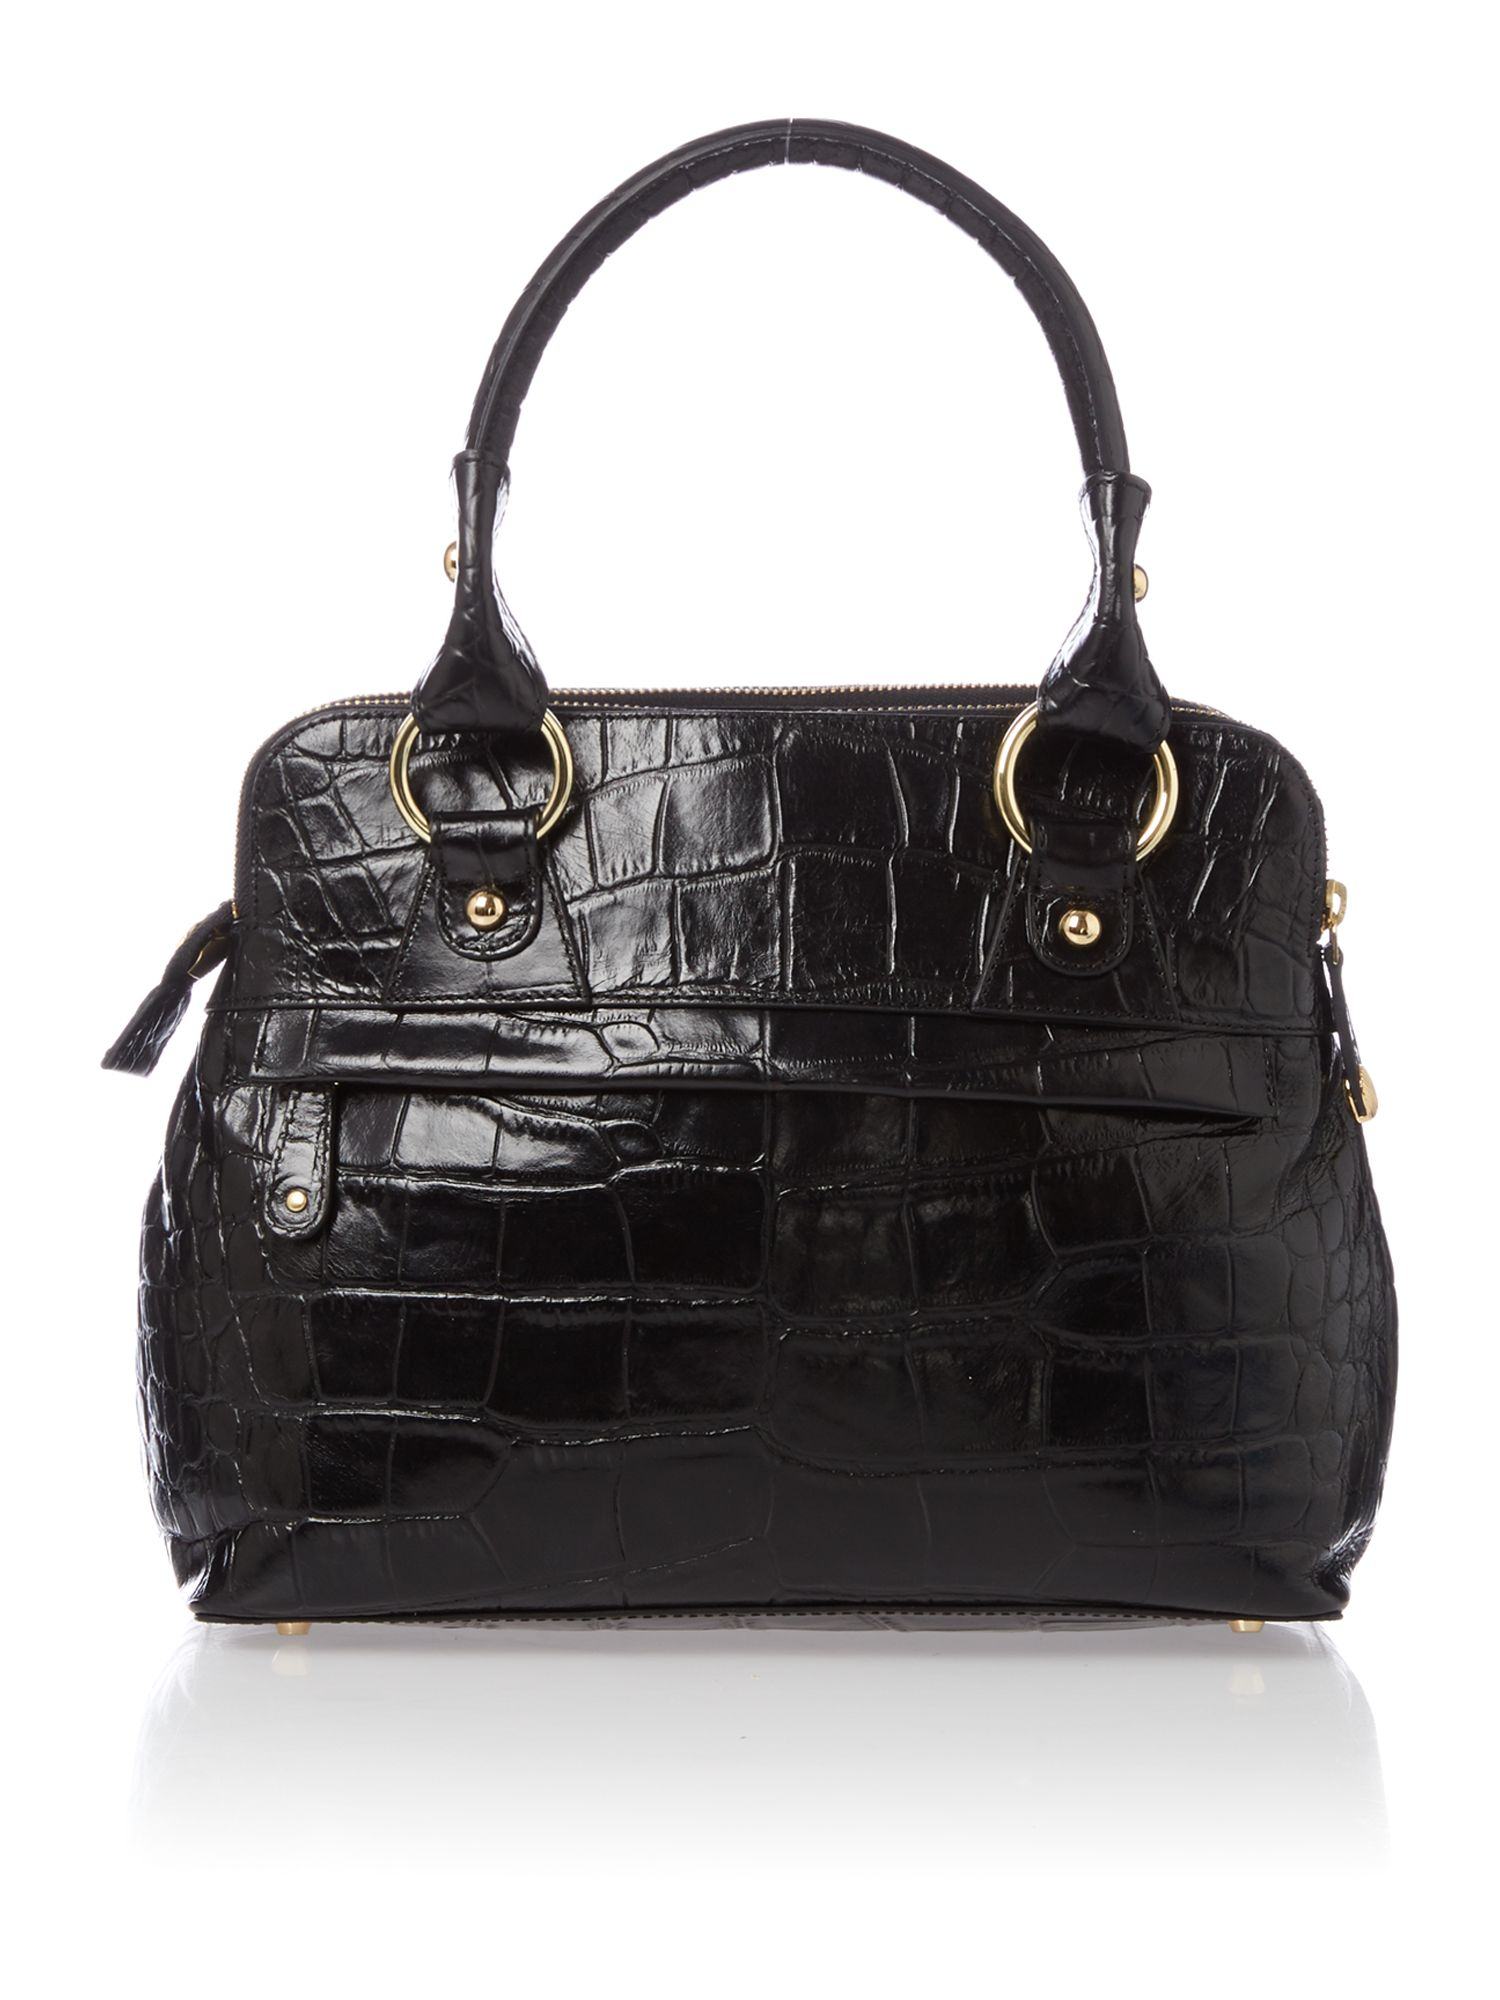 Pippa small black croc tote bag